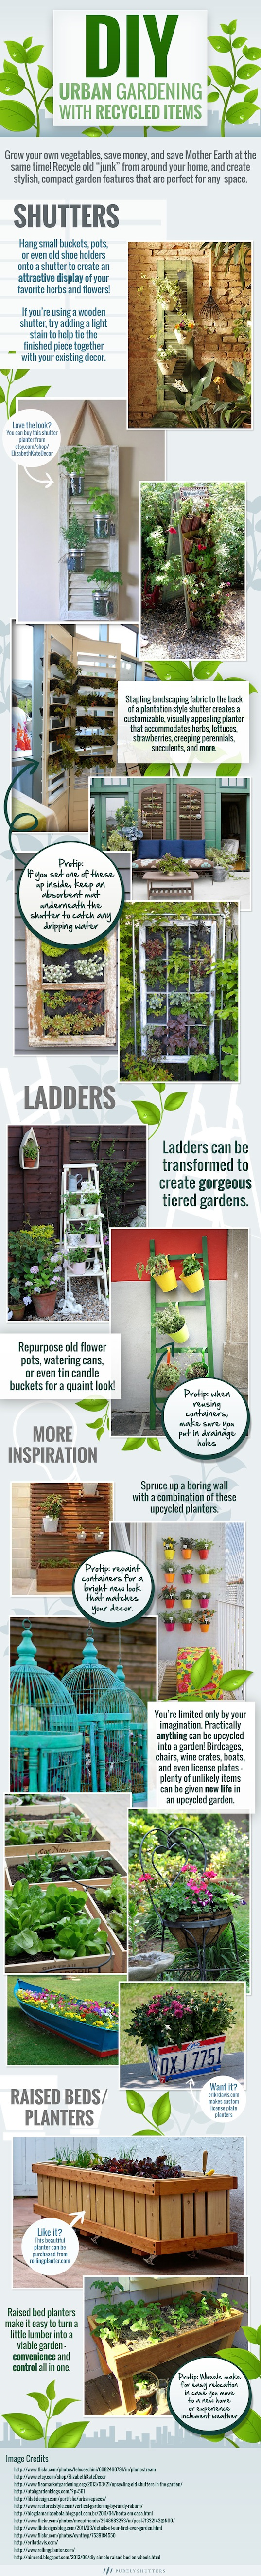 DIY, reader submitted content, infographic, Purely Shutters, urban gardening, upcycled, recycled, upcycled materials, gardening